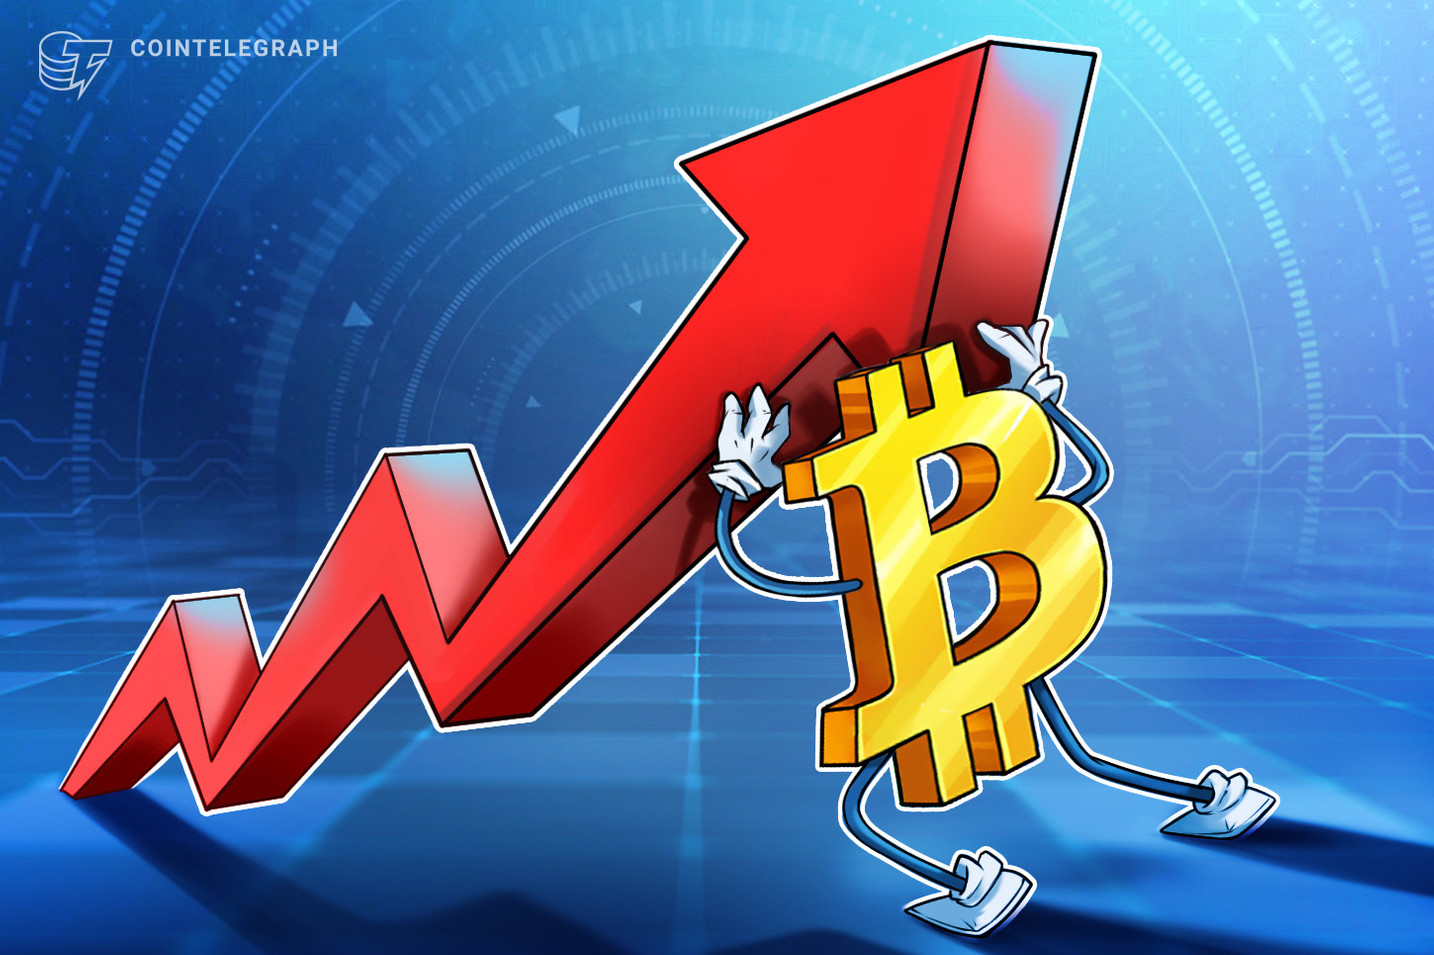 Bullish trend reversal underway as Bitcoin price holds above $11,000